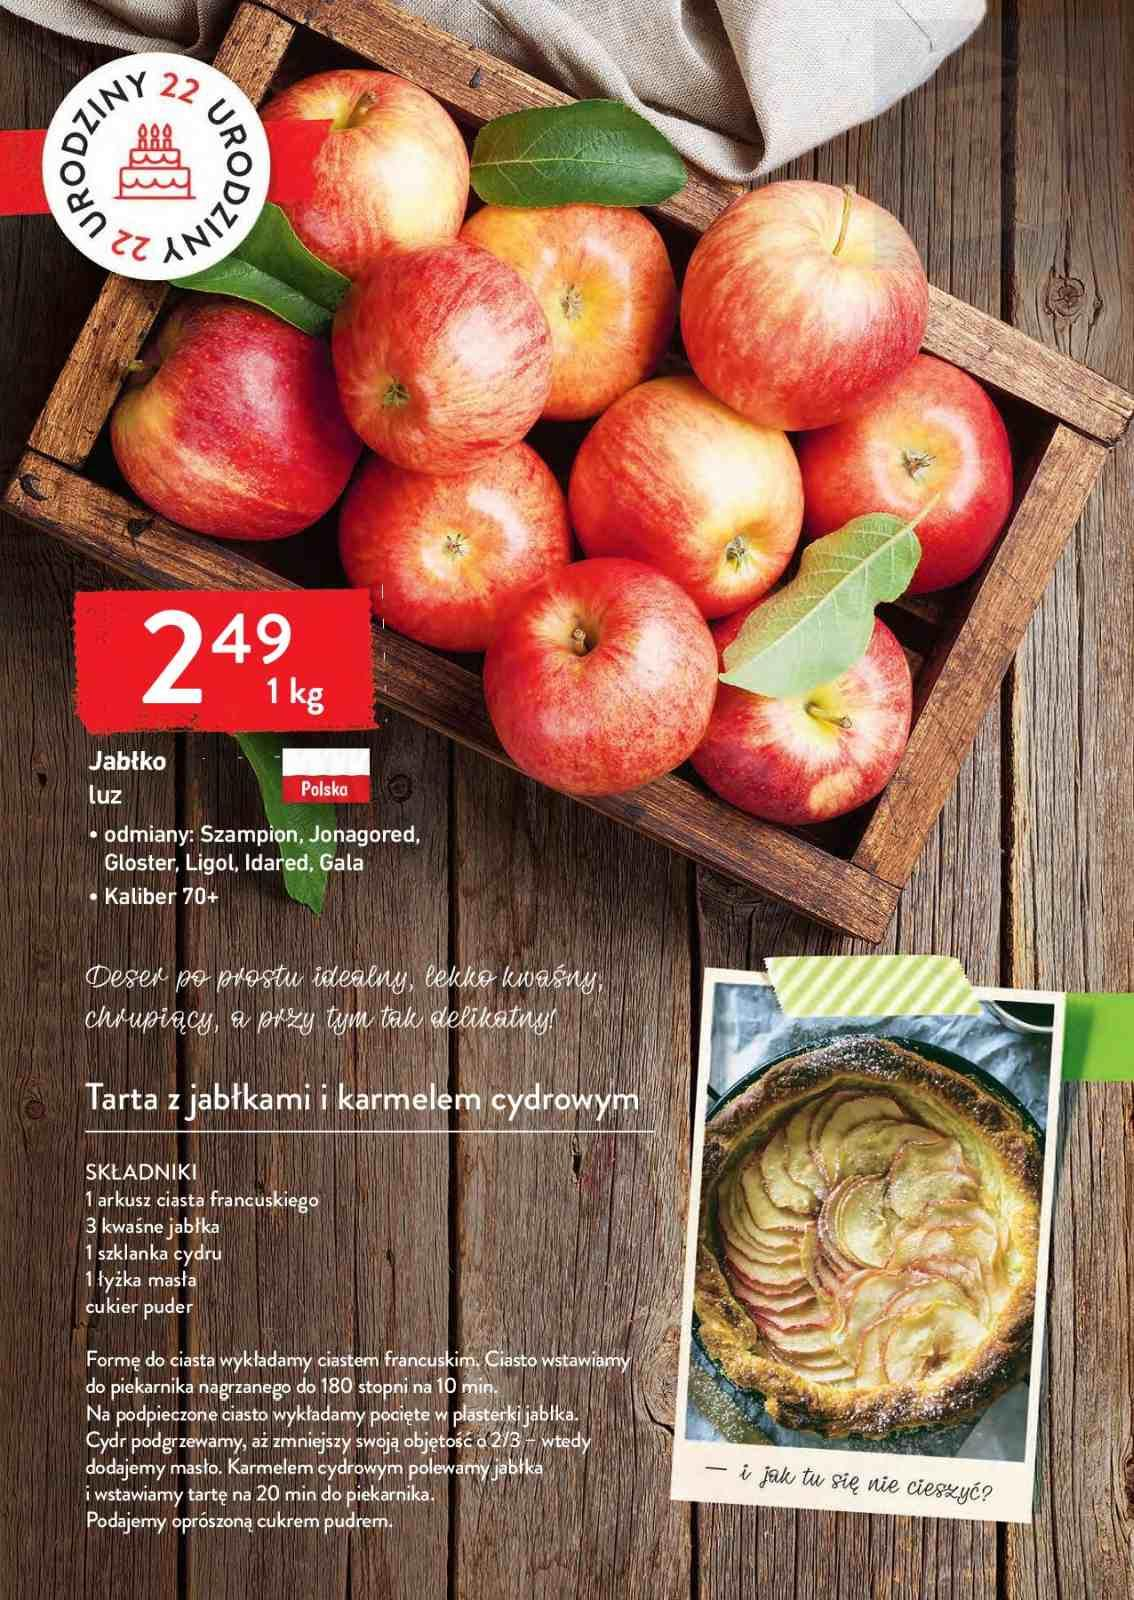 Gazetka promocyjna Intermarche do 21/10/2019 str.6